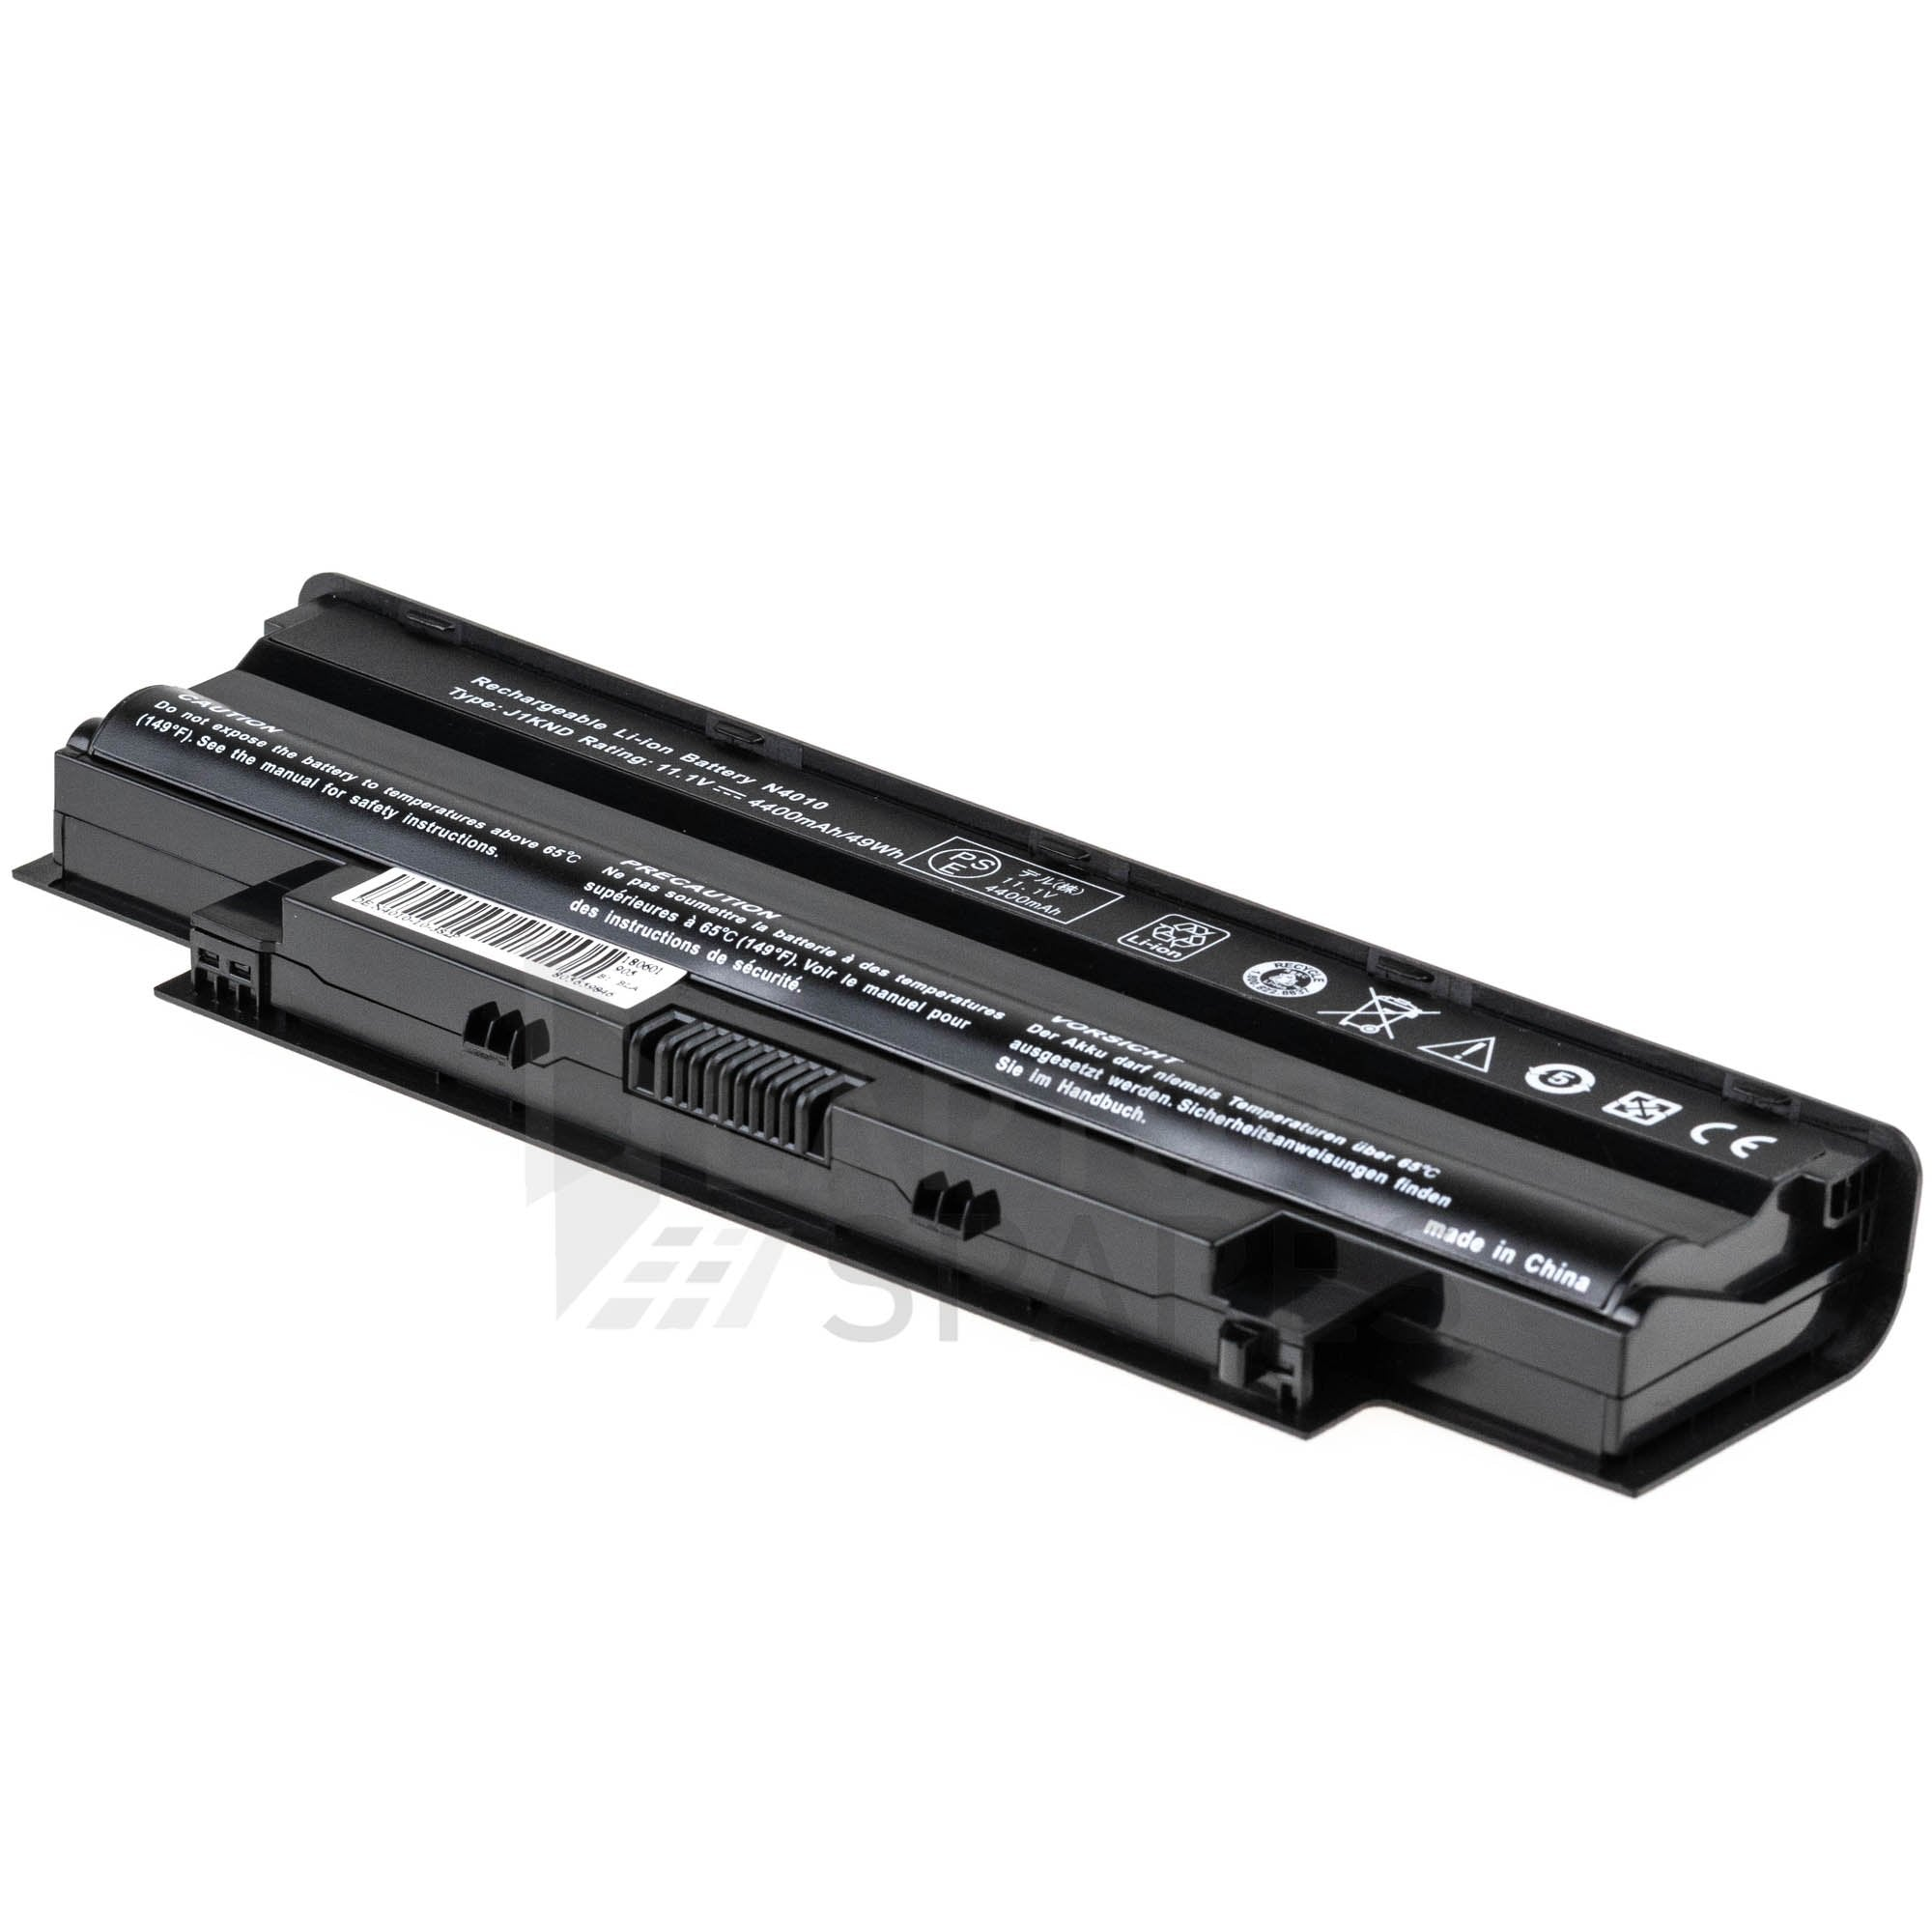 Dell Inspiron N5110 4400mAh 6 Cell Battery